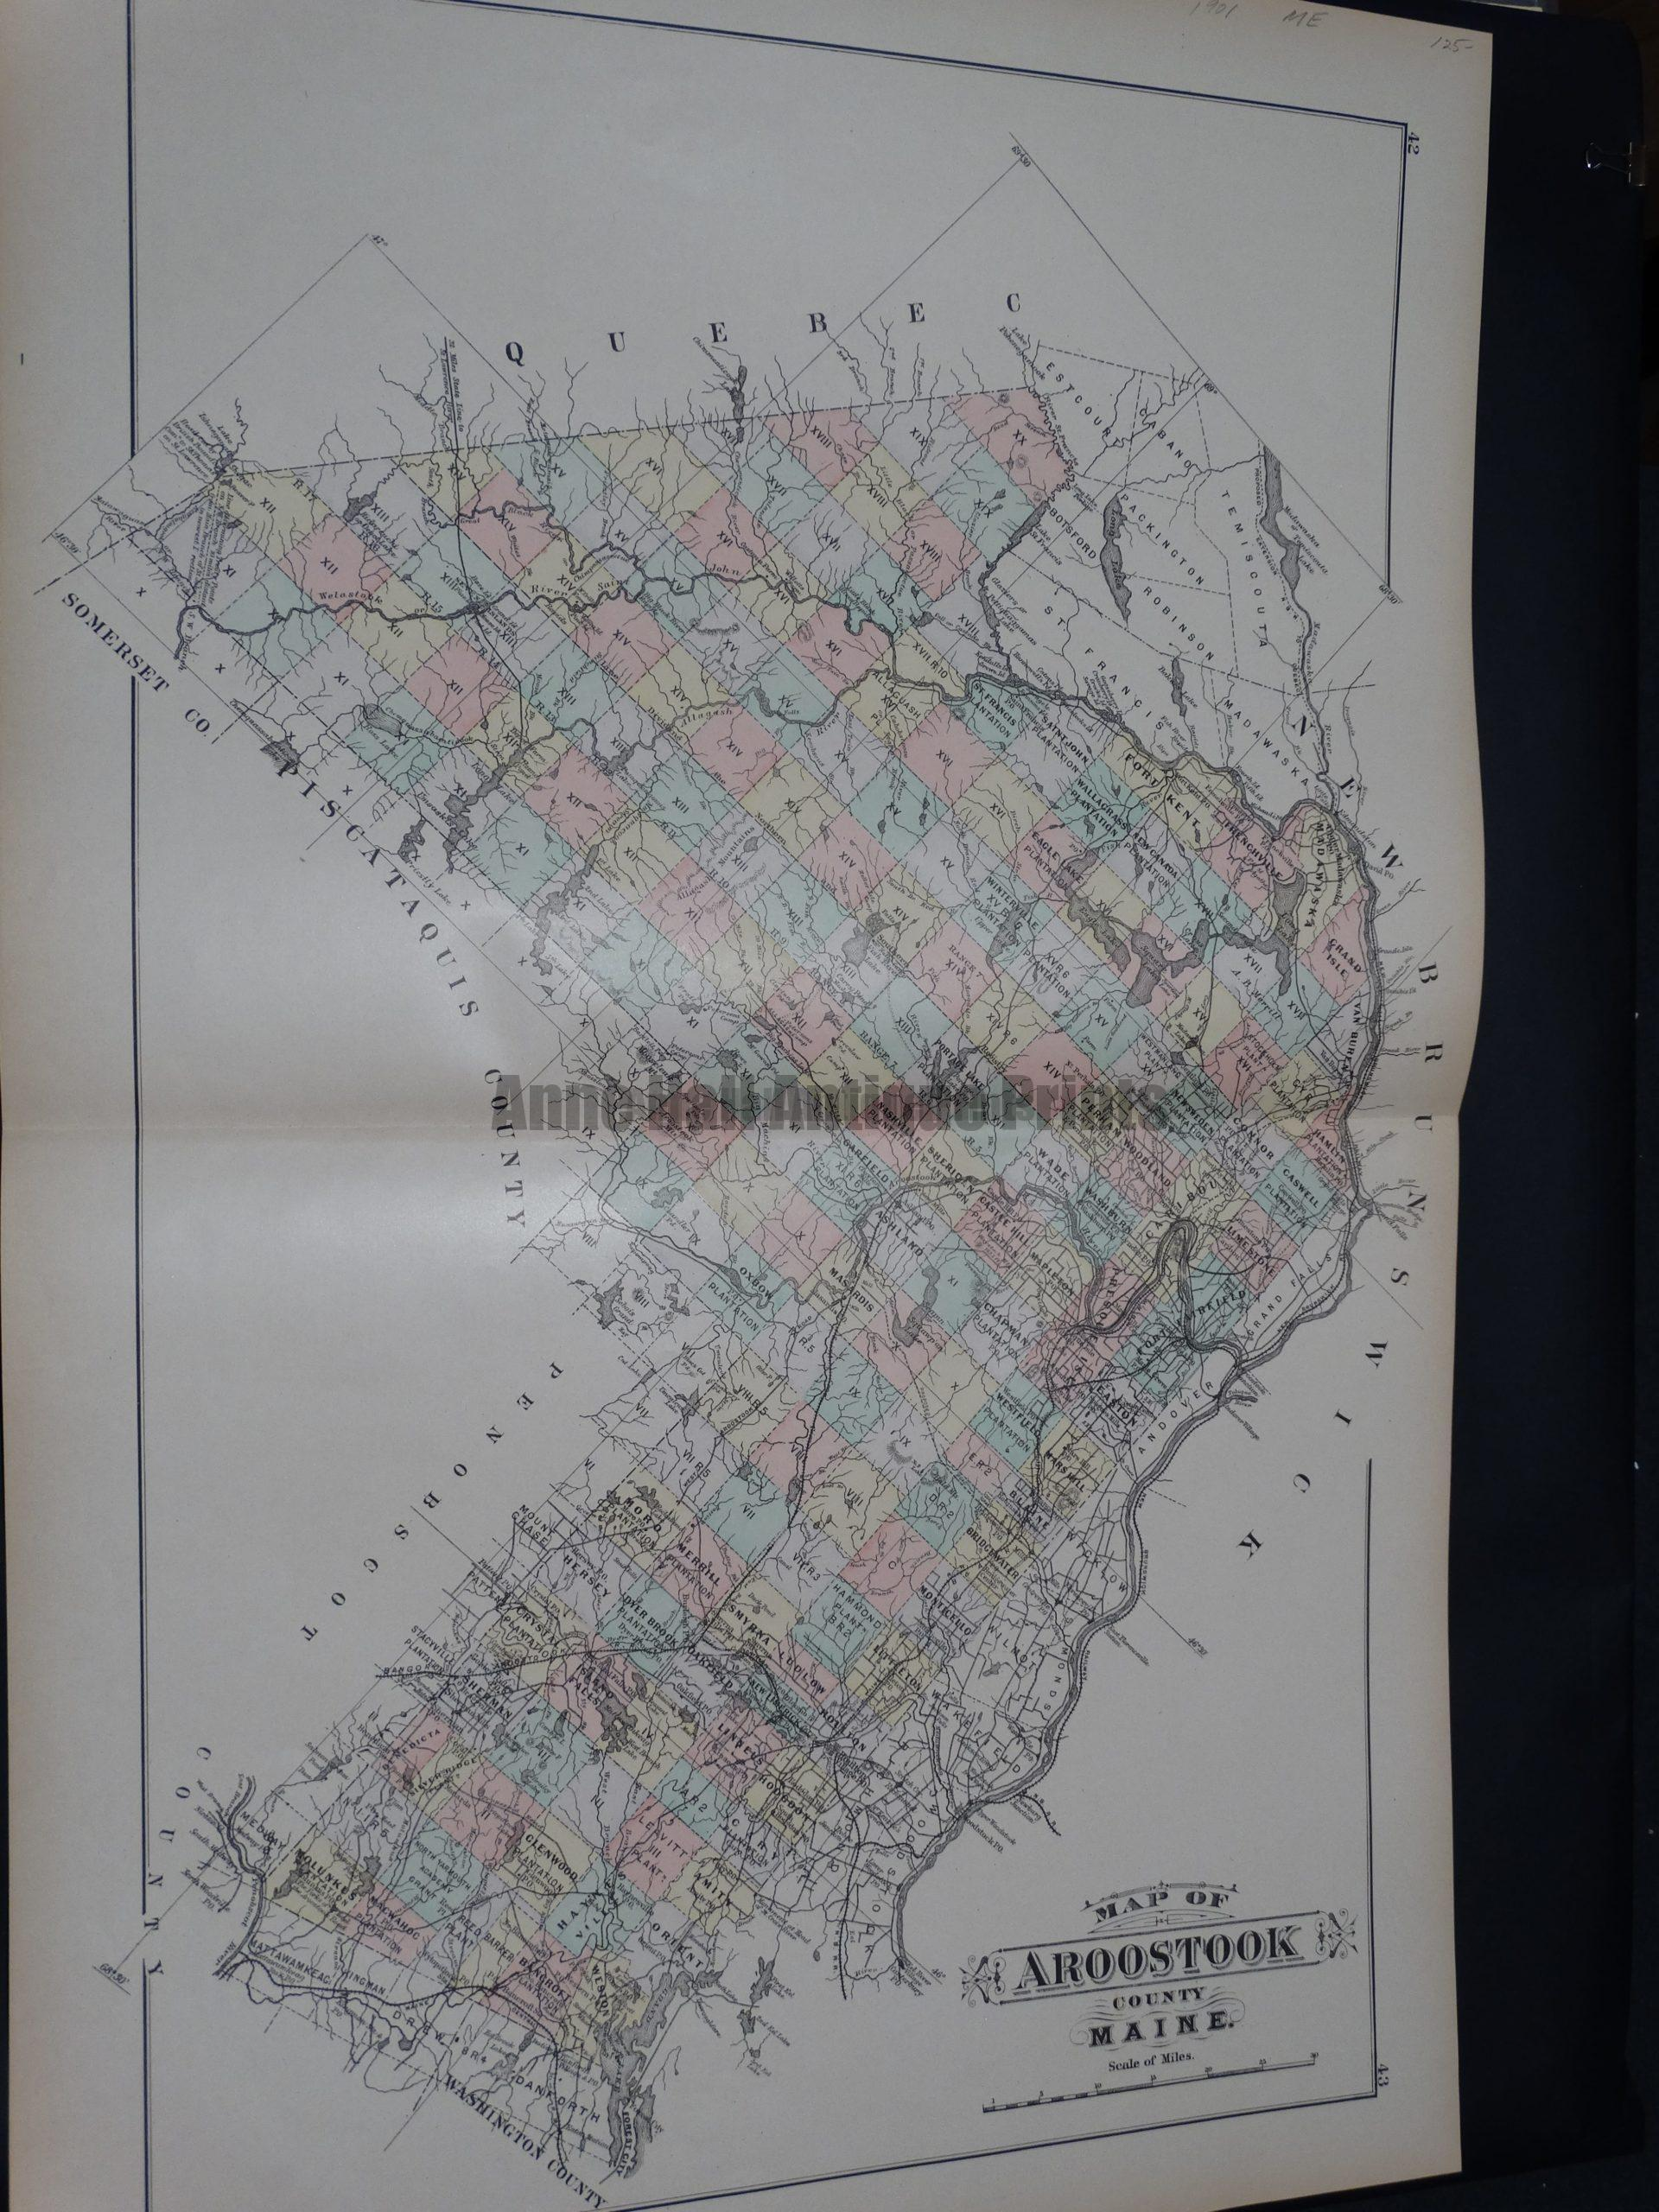 Map of Aroostook County Maine.